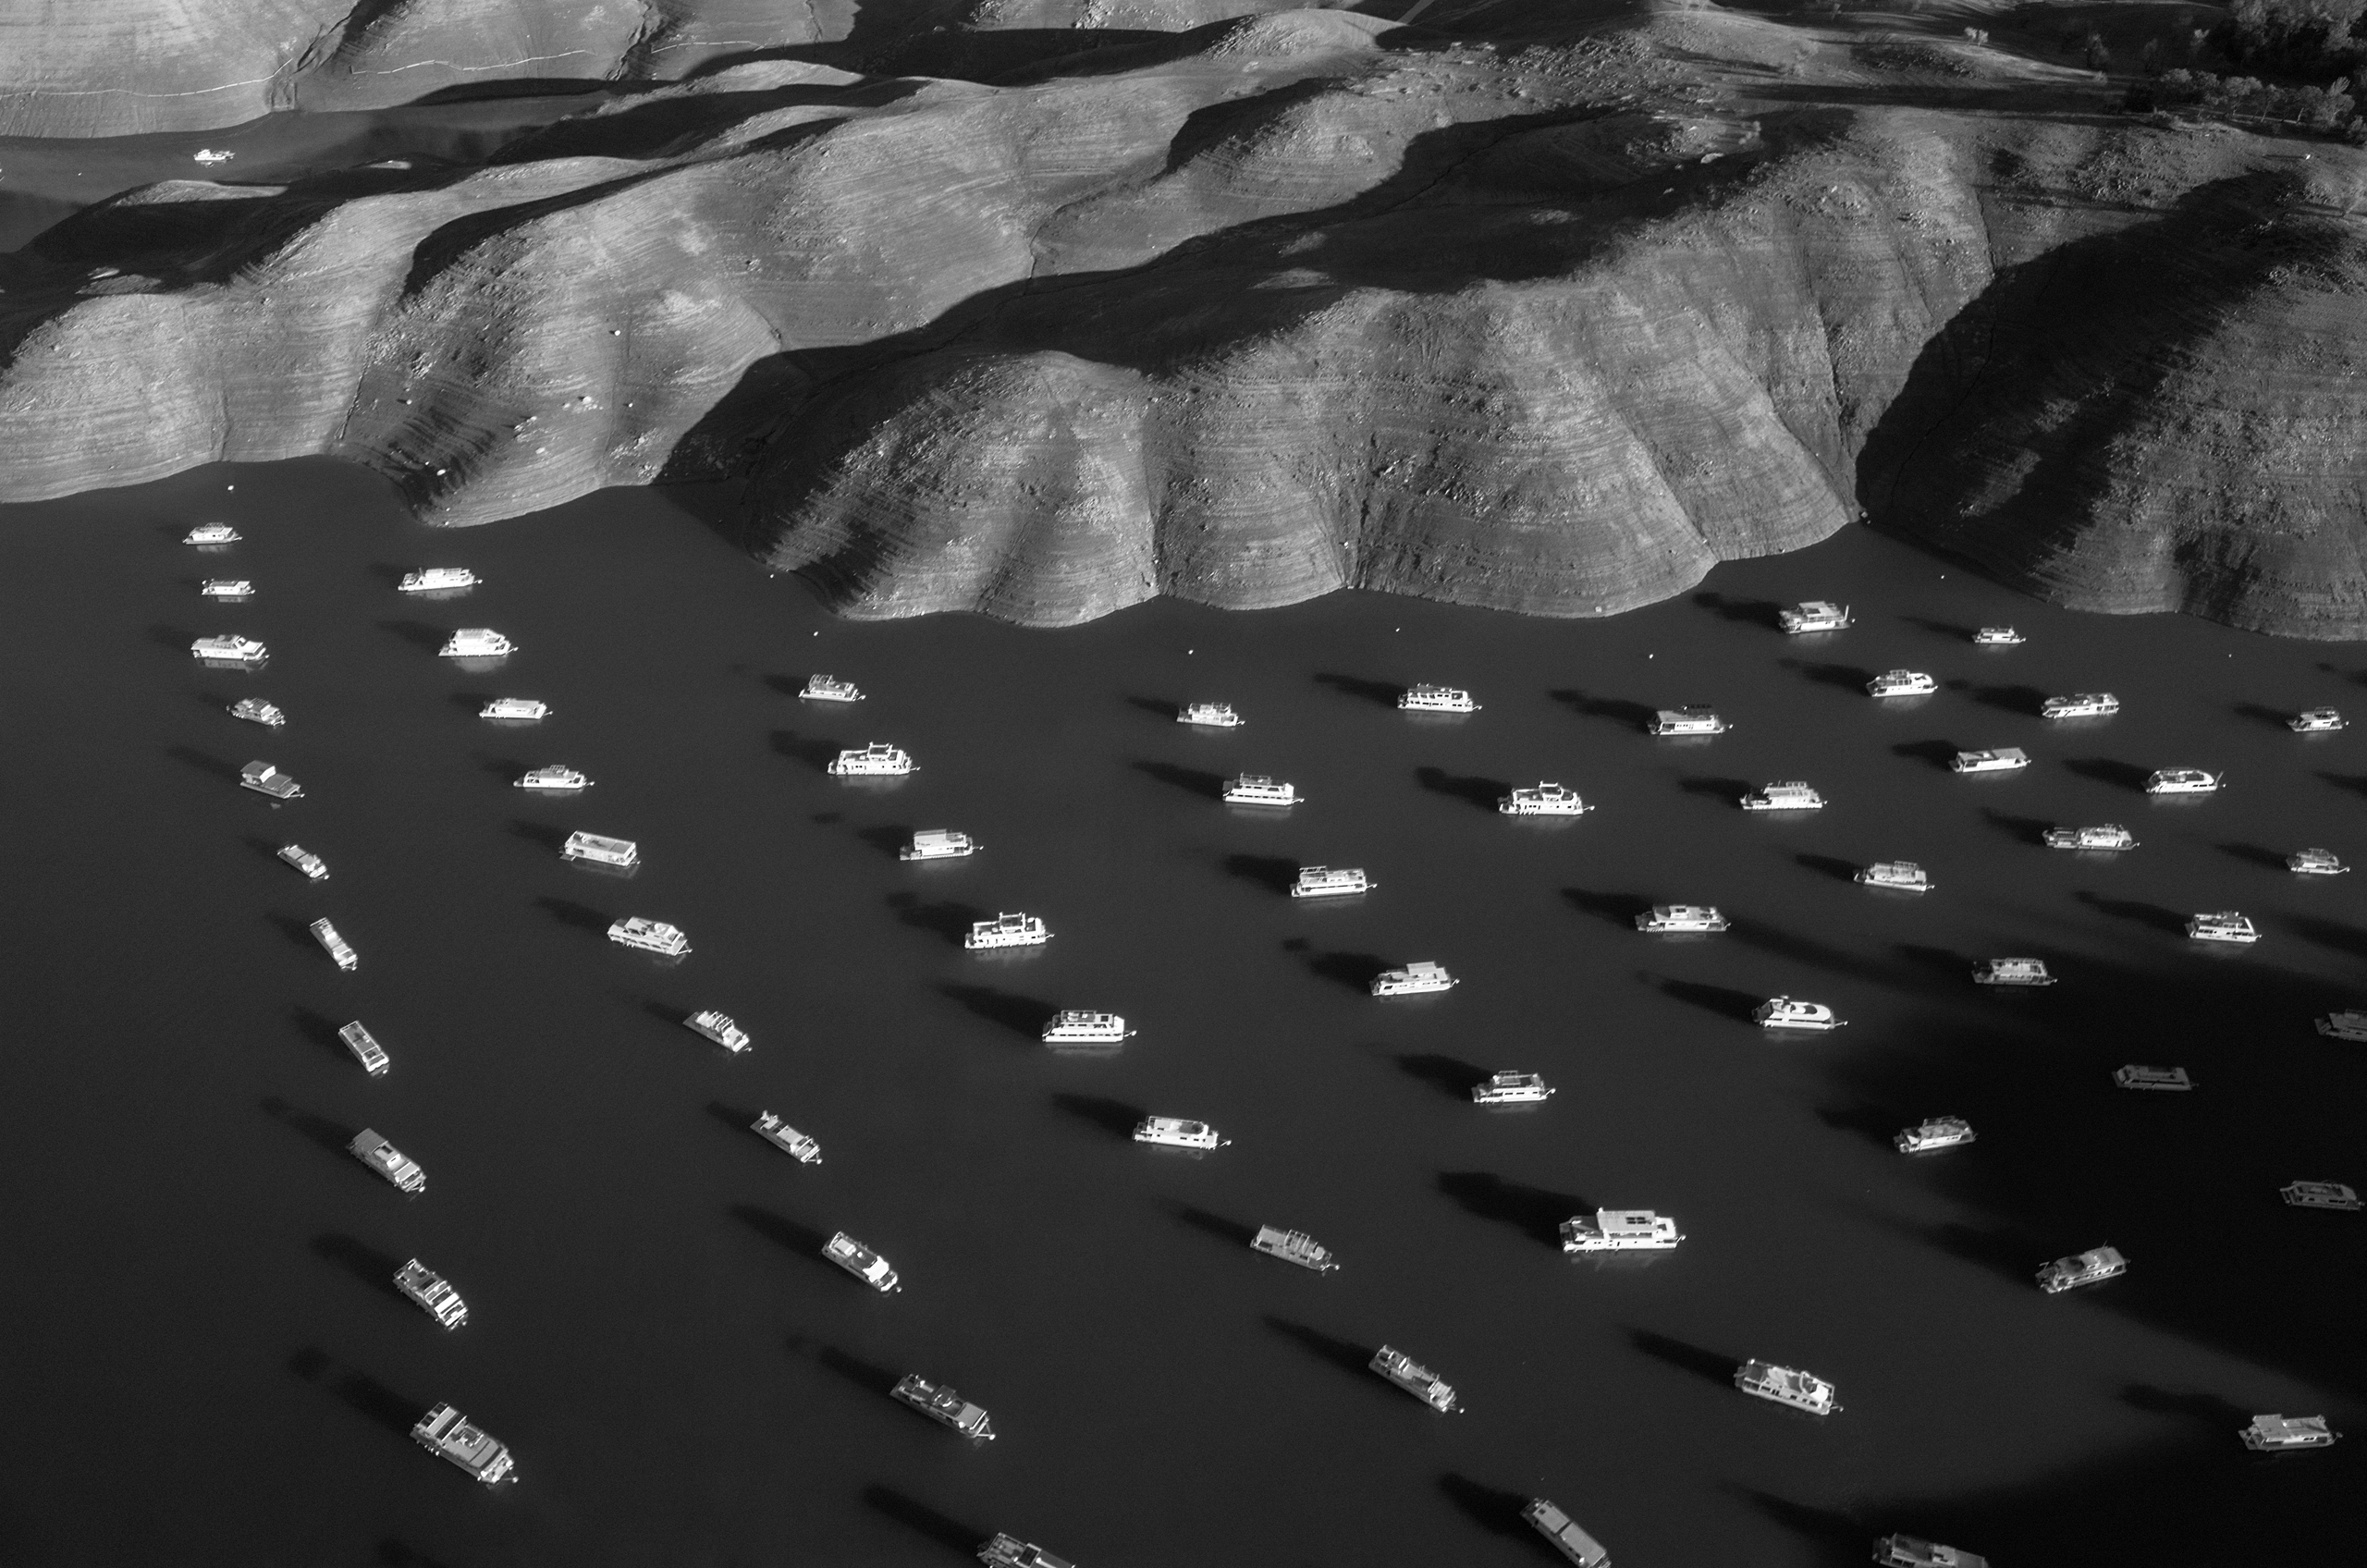 """Tomas van Houtryve. Lake Oroville, California. Nov. 25, 2014: """"I took this photo with my camera attached to an aerial drone as part of my 'Blue Sky Days' personal art project,"""" says VII photographer Tomas van Houtryve. """"During the past year I've traveled from coast to coast building a portrait of our country as seen from the sky. In addition to the unique point-of-view offered by this new technology, my project allows me to push back against what I consider to be a troubling trend: cameras are increasingly weaponized – used for surveillance, targeting and killing – rather than their traditional role as tools for portraiture, fine art and journalism. The rapid rise of drone technology means our sky will soon be buzzing with many more cameras.                                                              """"Do we want these robotic machines only to be scanning our faces and license plates for suspicious patterns, or we do want them documenting beauty, historic moments, and a hint of poetry as so many human photographers have since the invention of the camera?                                                              """"In this photograph, house boats are seen on Lake Oroville which is 70% empty due to California's severe drought. Much of the food eaten across the U.S. comes from California, and agriculture has been severely impacted by the scant snowpack and low rainfall of the past three years."""""""